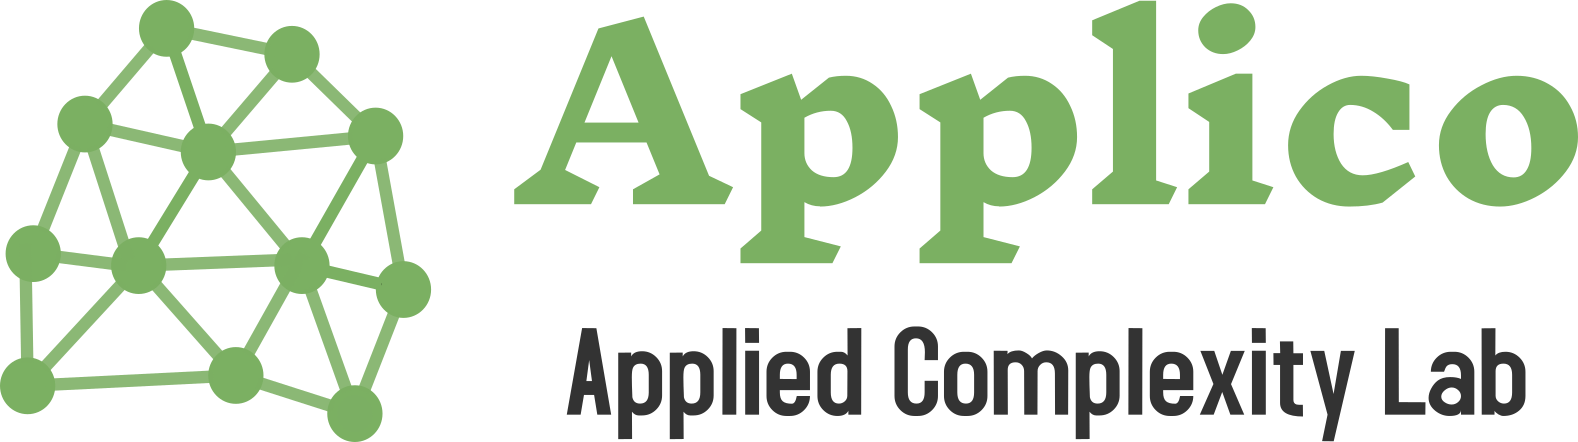 Applied complexity Lab